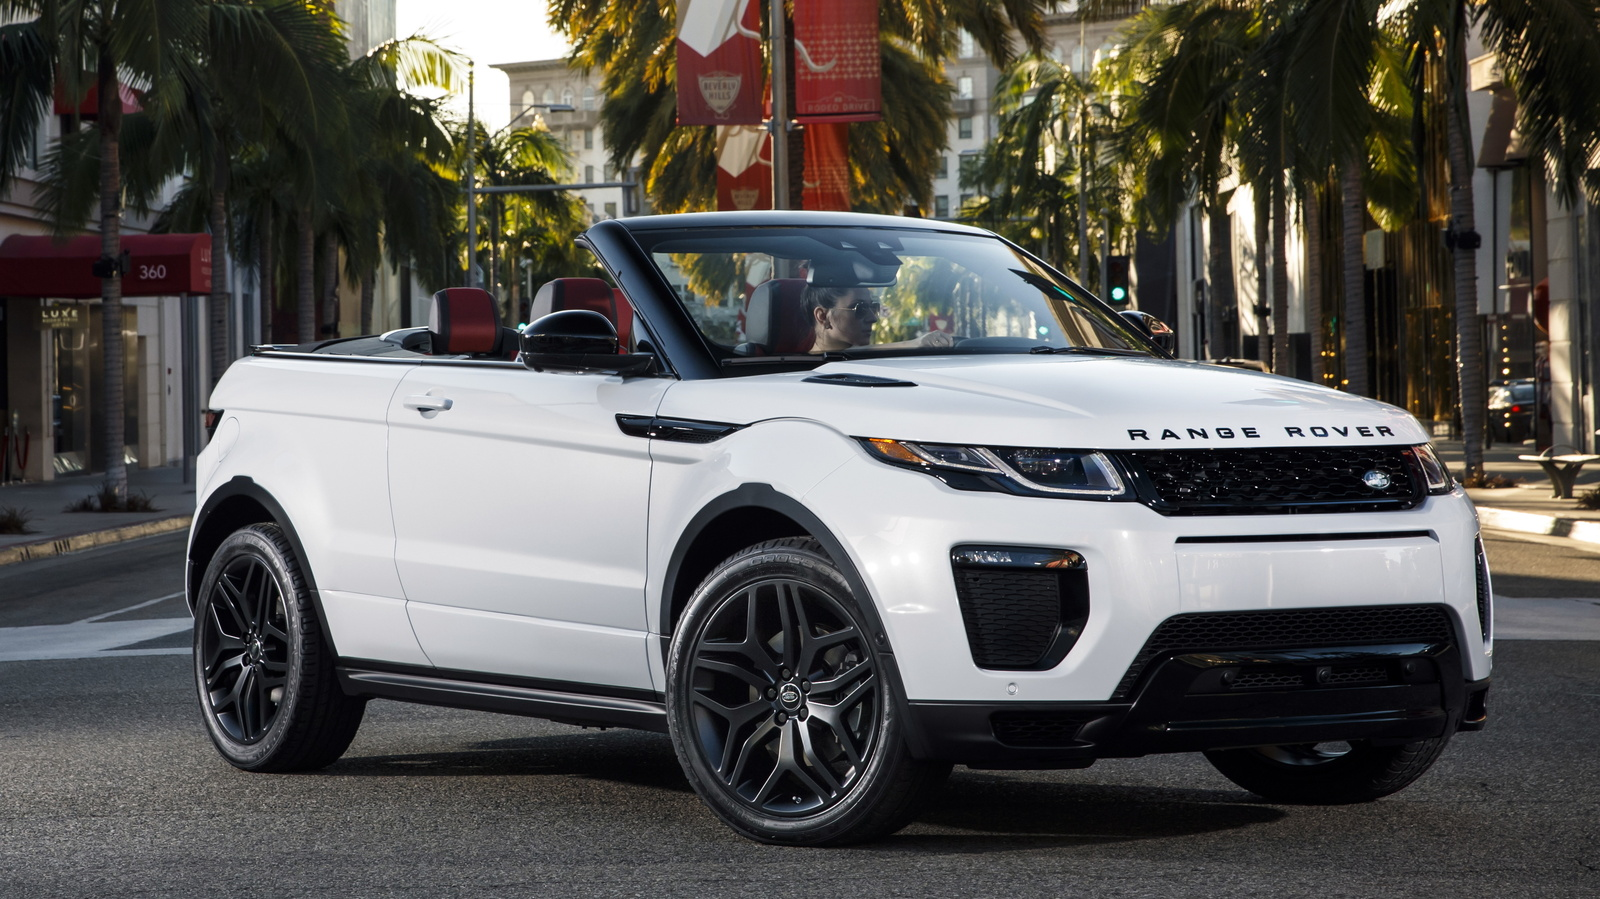 2017 land rover range rover evoque for sale in los angeles. Black Bedroom Furniture Sets. Home Design Ideas